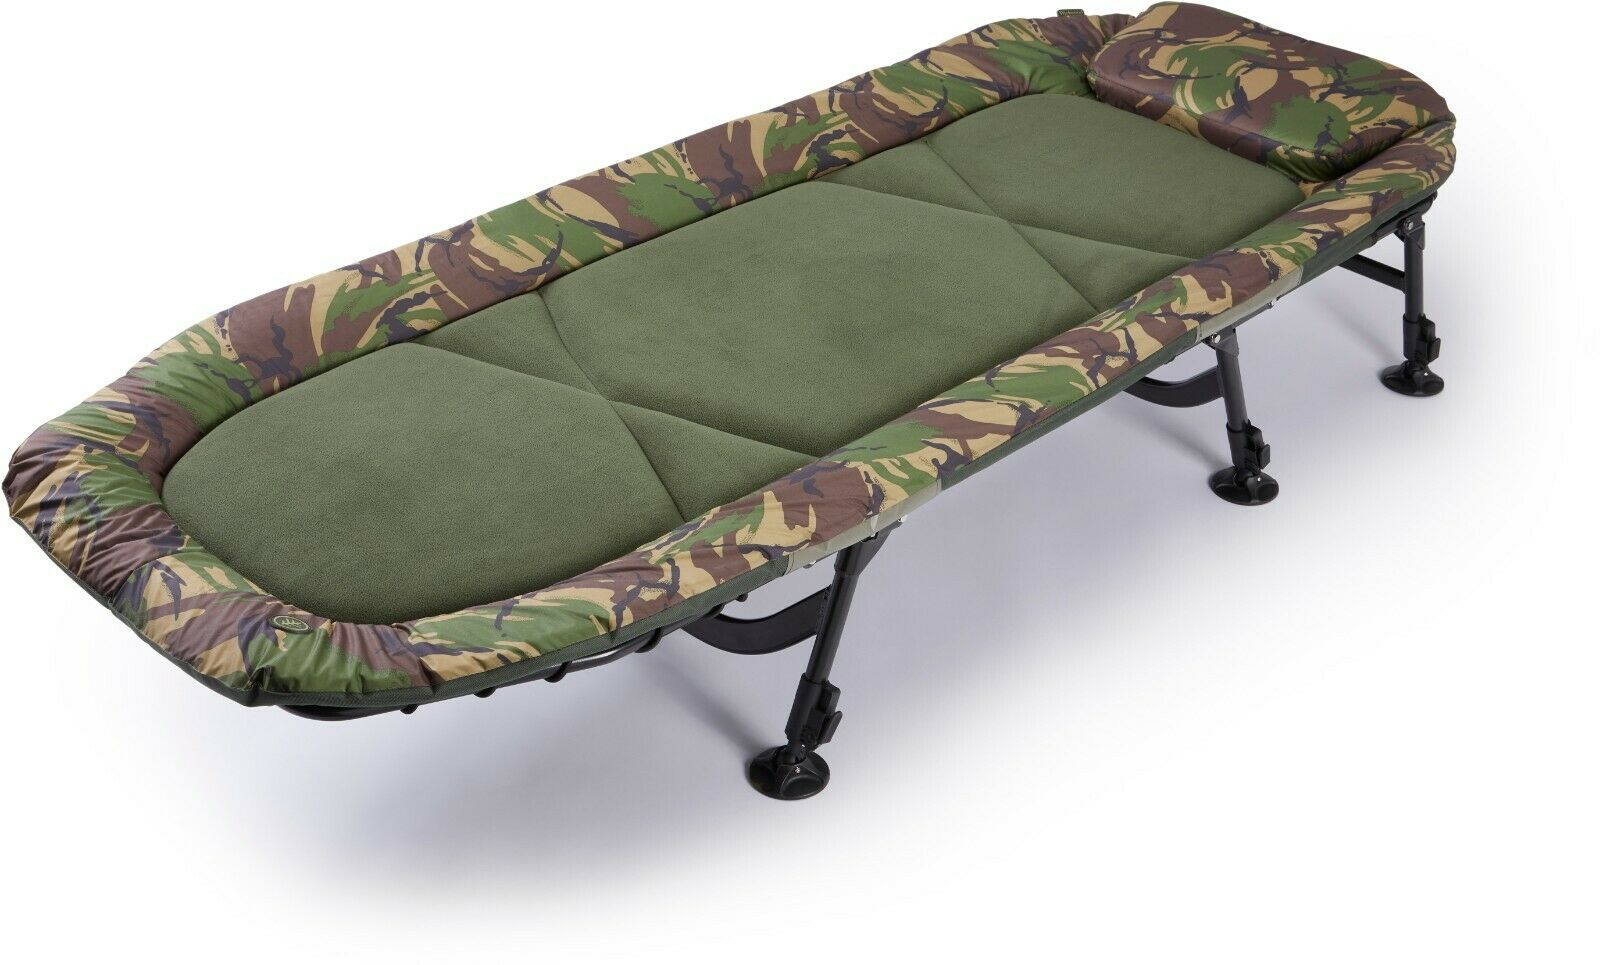 Wychwood Tactical X Flatbed NEW Carp Fishing Bedchair All Models